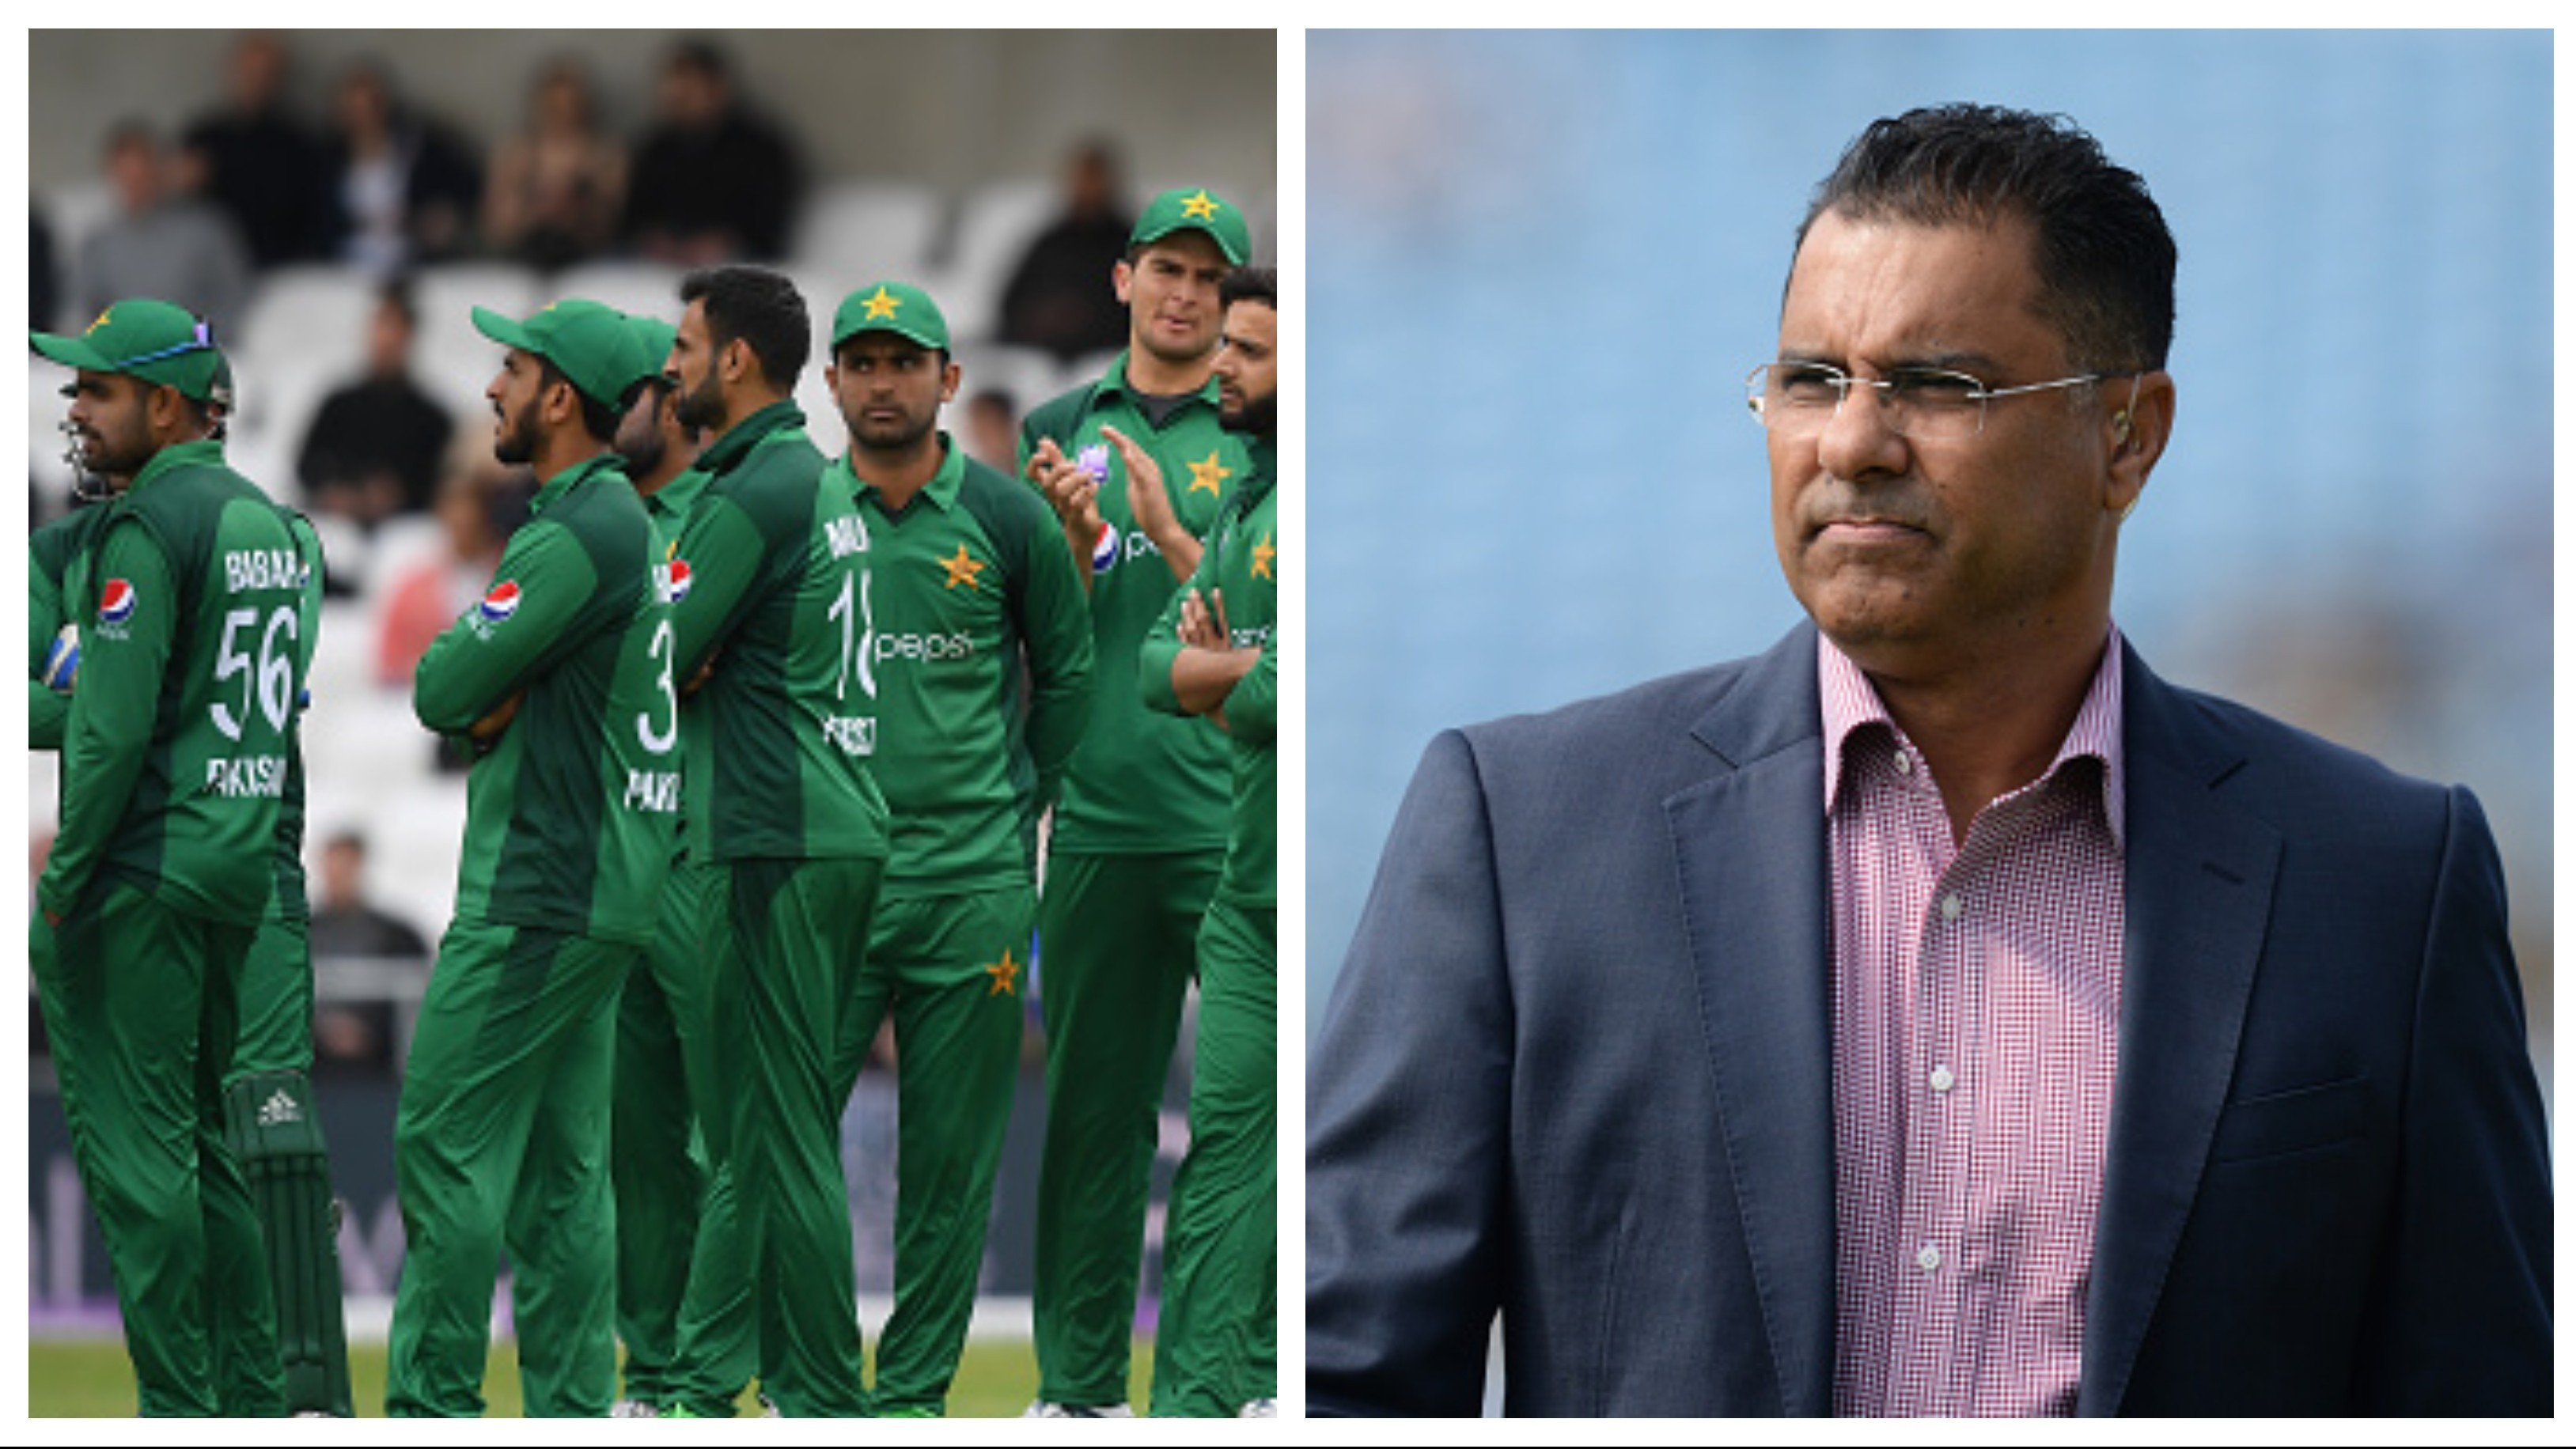 CWC 2019: Pakistan will be dangerous if it enters the semis, says Waqar Younis